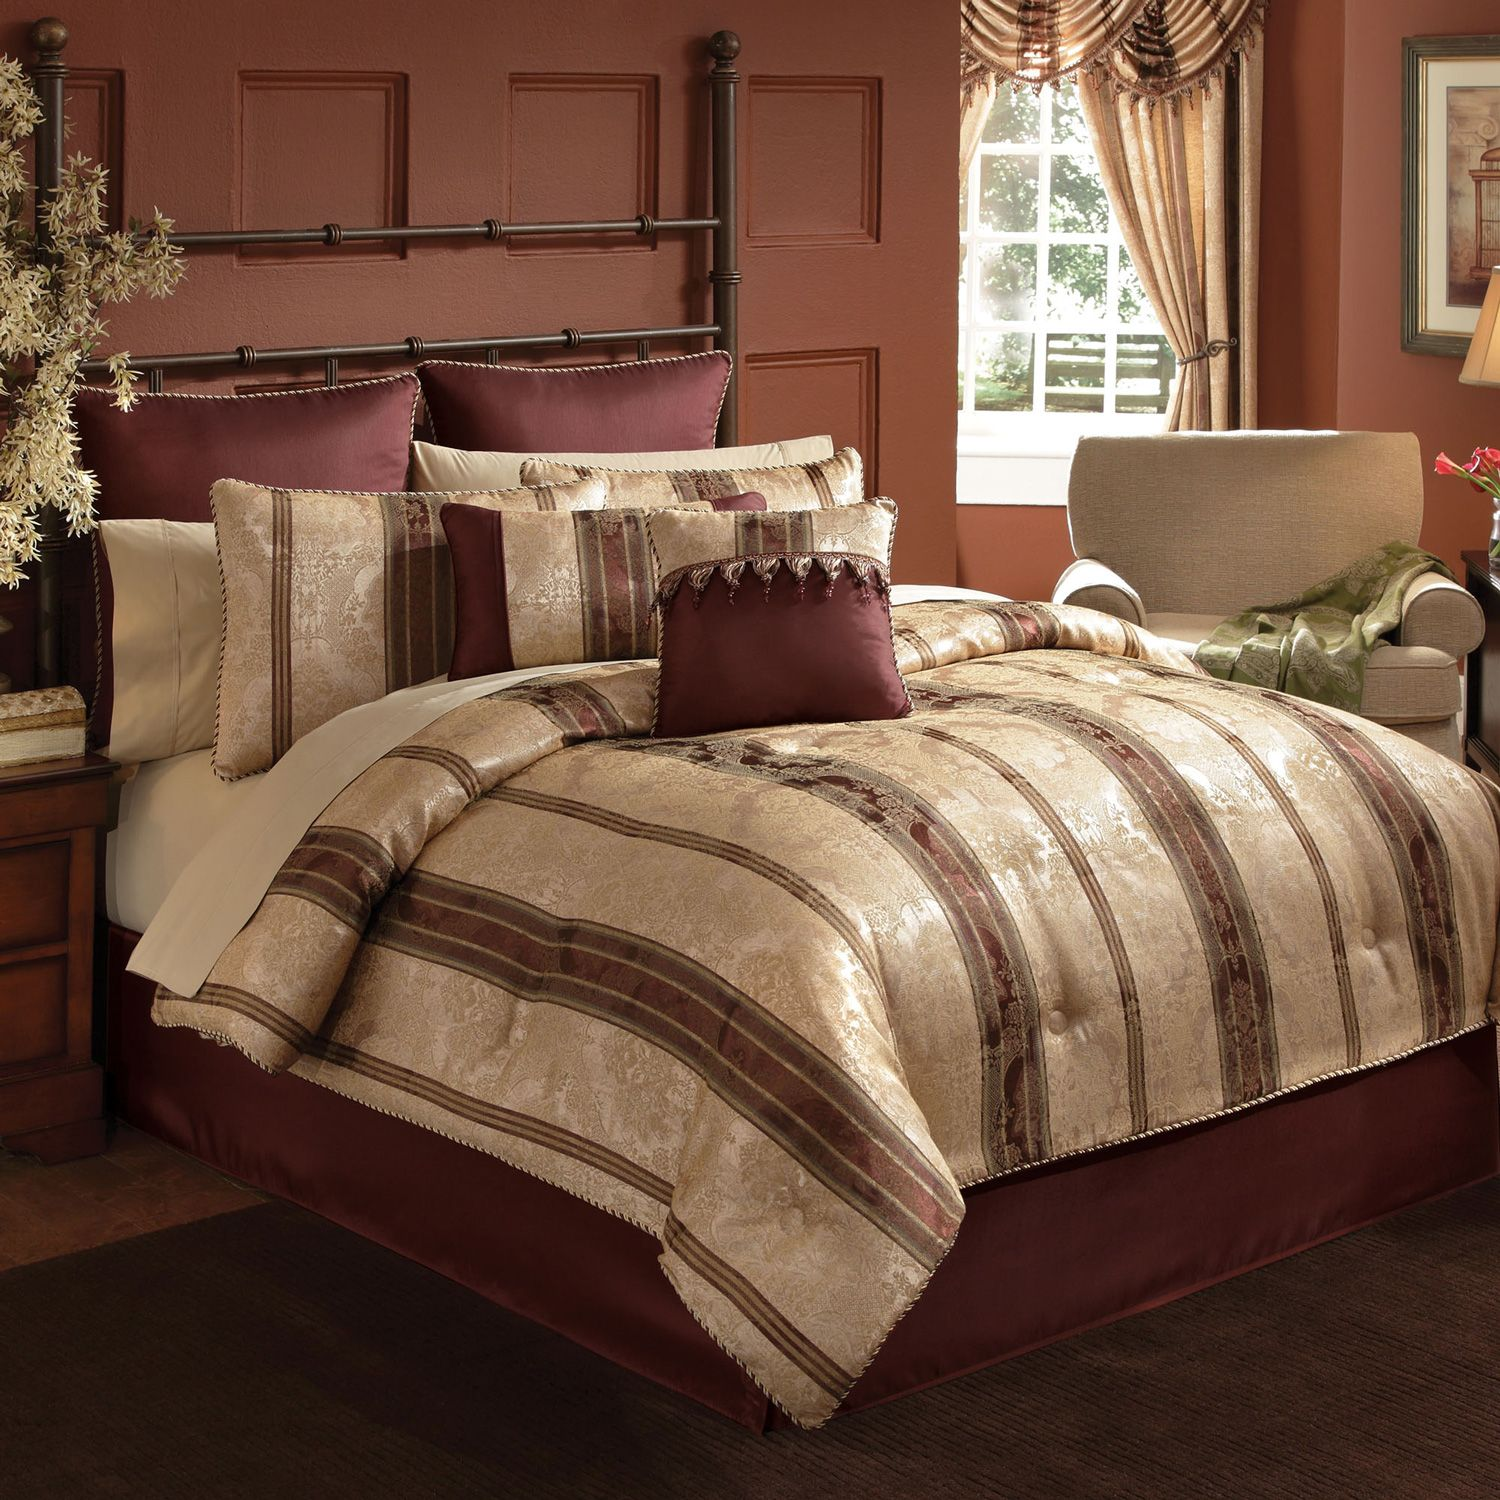 Markis Bedding Sets King With Pillows Sets Color. Comforter ...